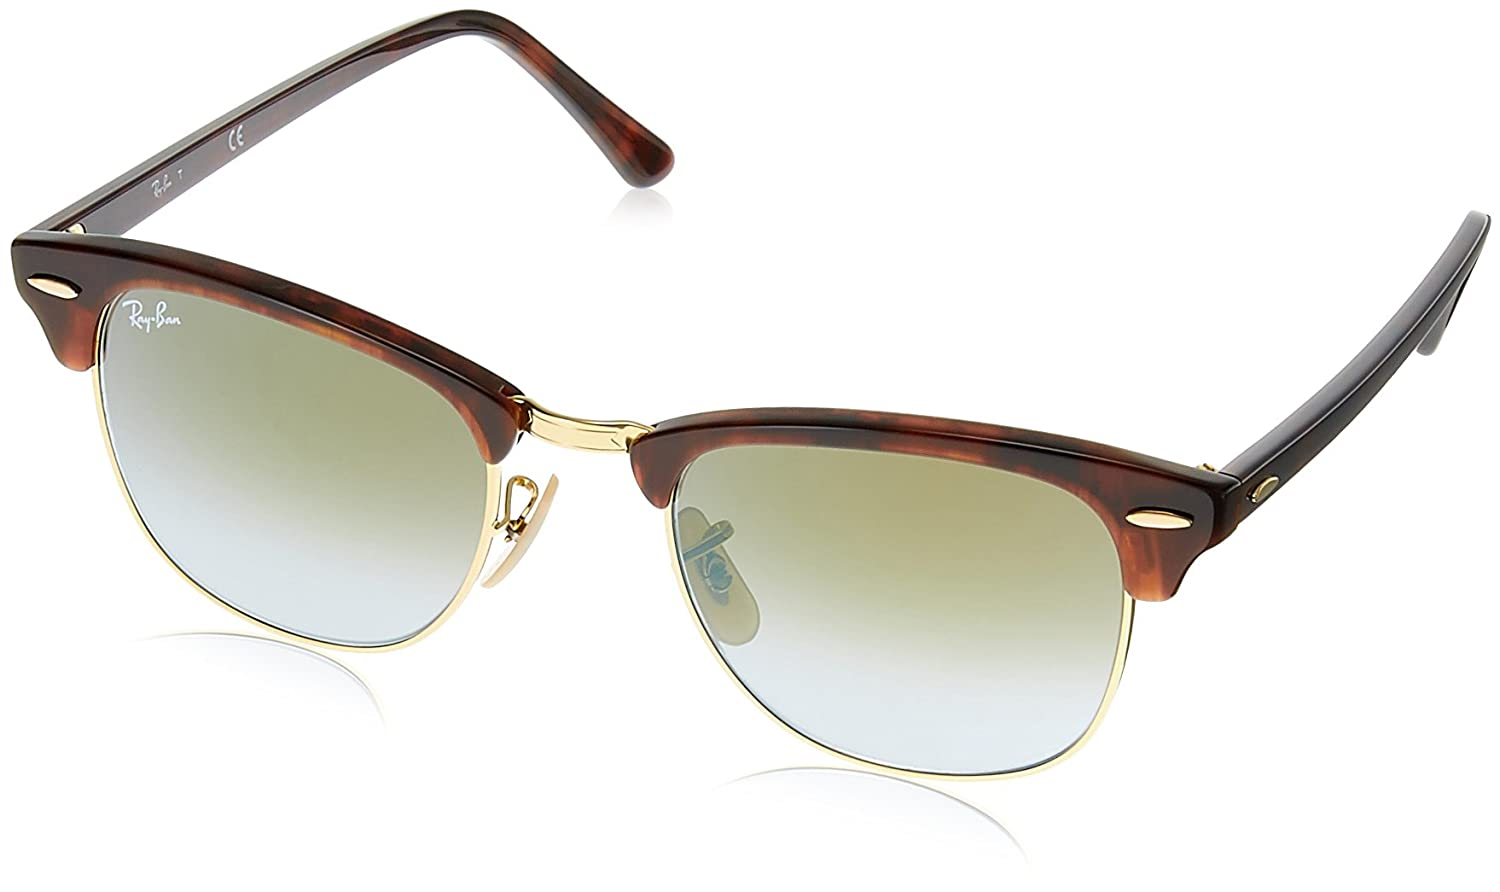 156f299852d8b Amazon.com  Ray-Ban CLUBMASTER - EBONY  ARISTA Frame CRYSTAL GREEN Lenses  51mm Non-Polarized  Ray-Ban  Clothing